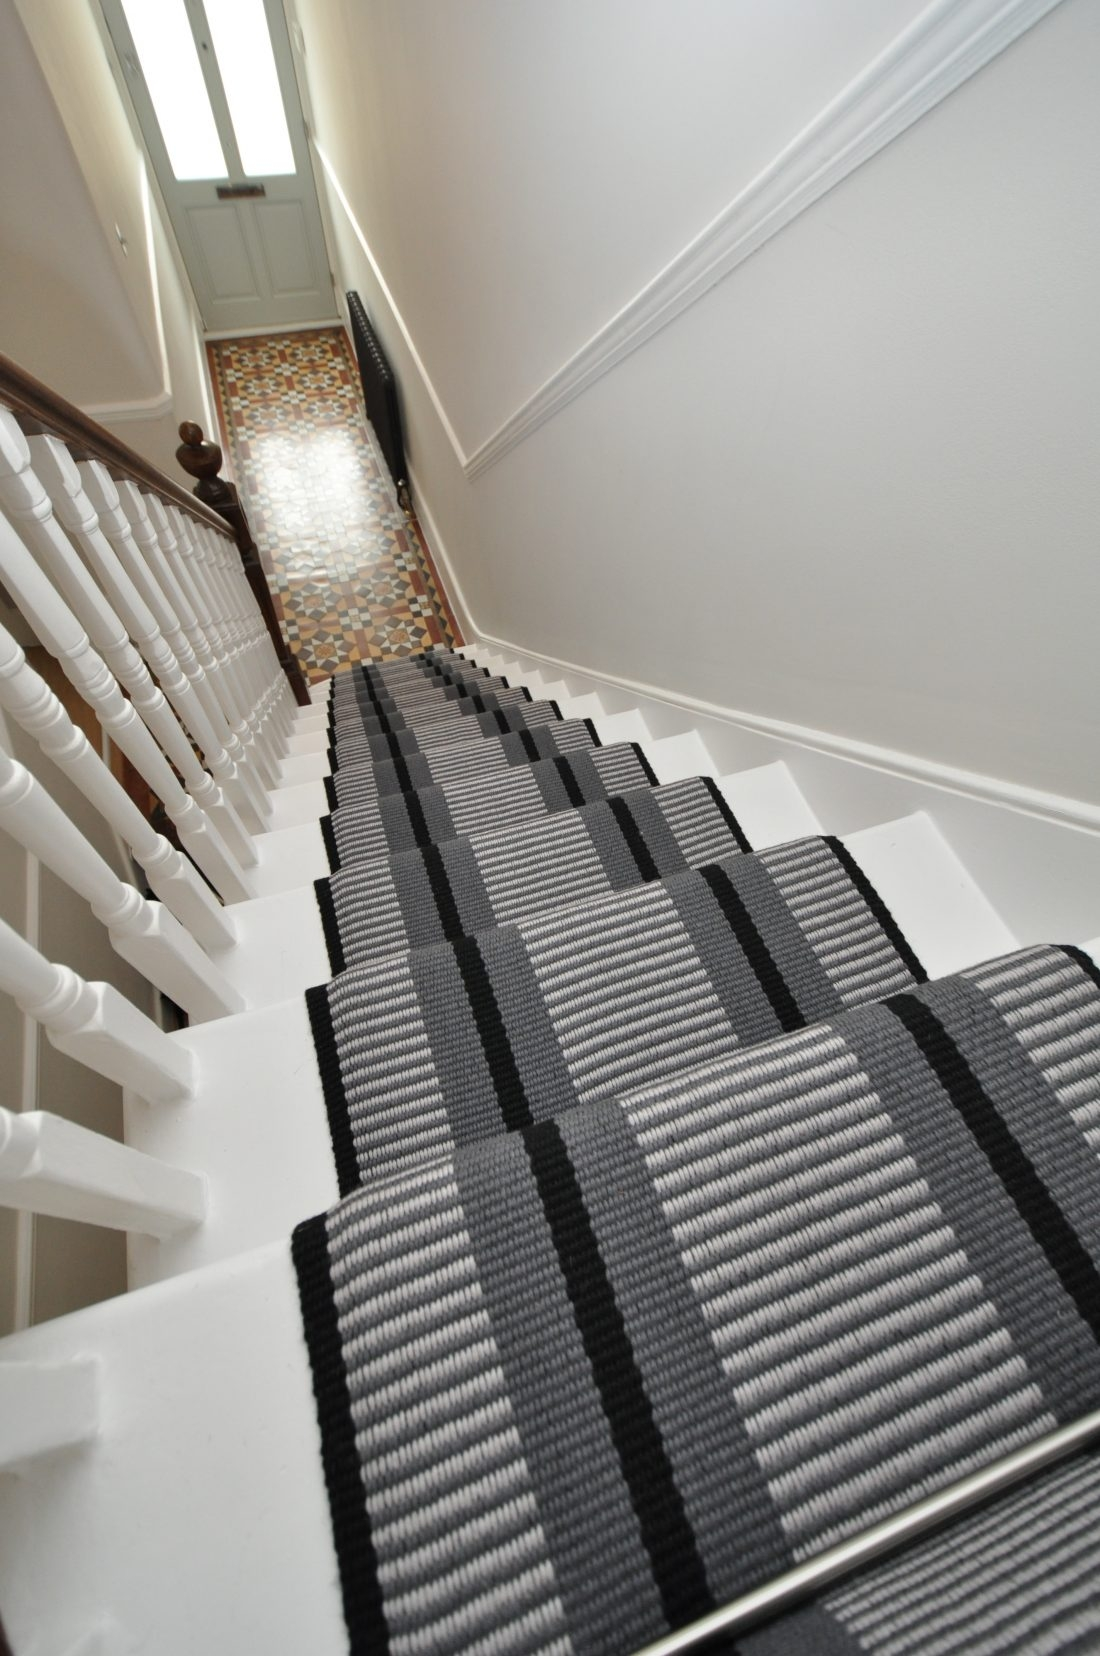 Point 1 60Cm With Austin Stair Rods Curved Rod Bottom Step   Off The Loom Stair Runners   Modern Staircase   Runner Brampton   Offtheloom   Loom Elsdon   Queenstown Road